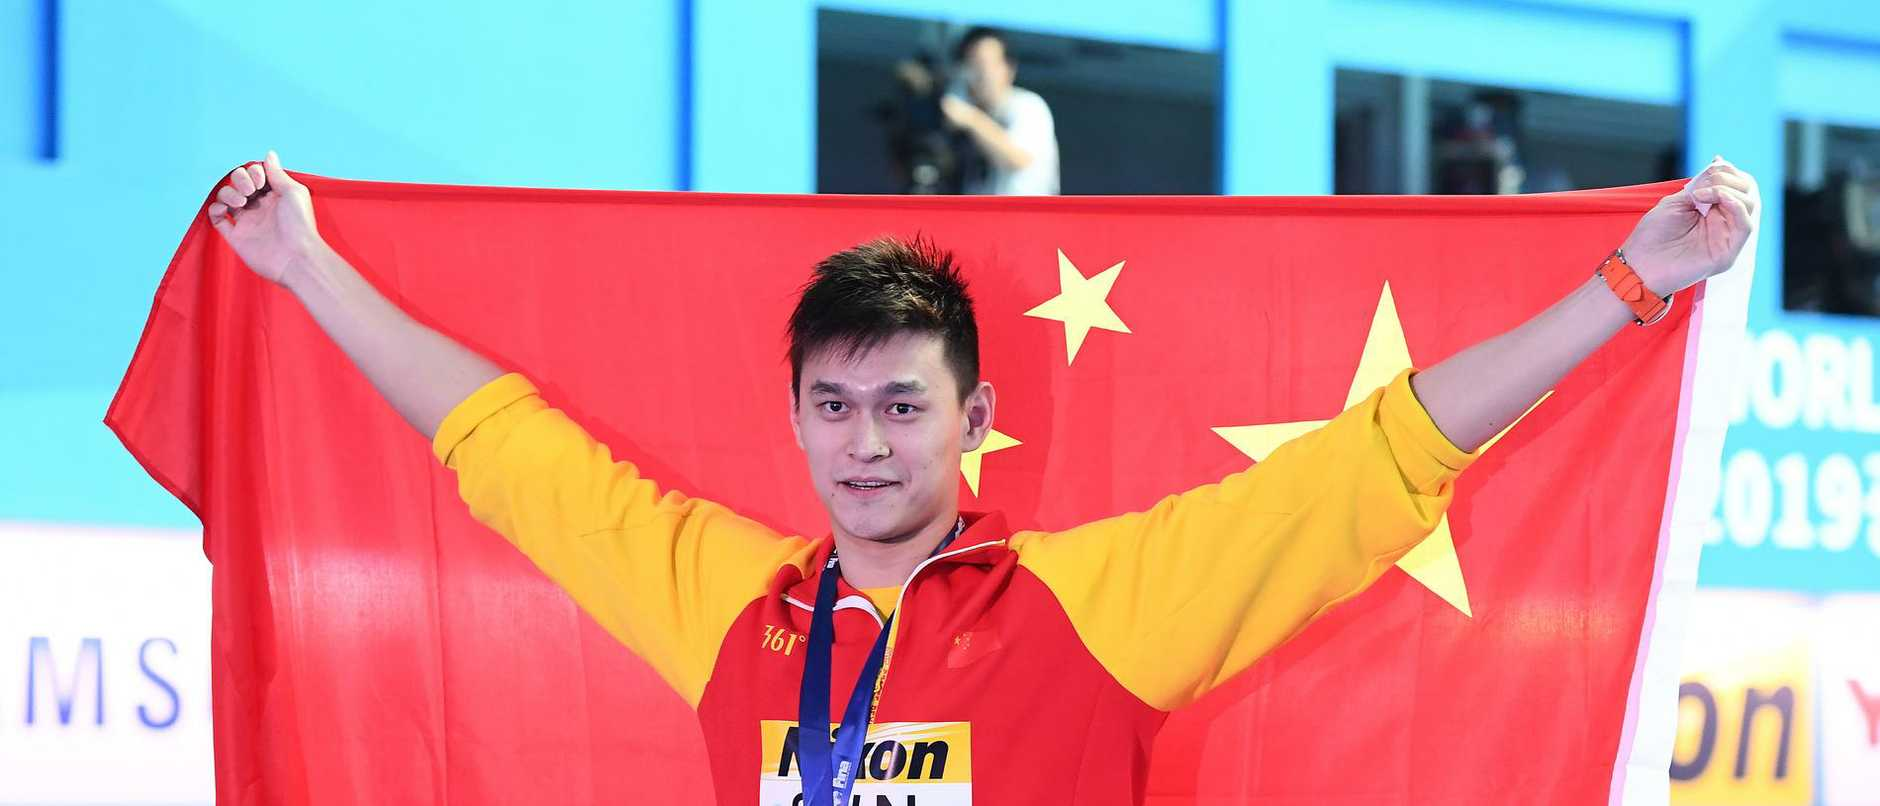 In an incredible development, the Chinese swimmer has had his eight-year ban thrown out because of alleged bias.